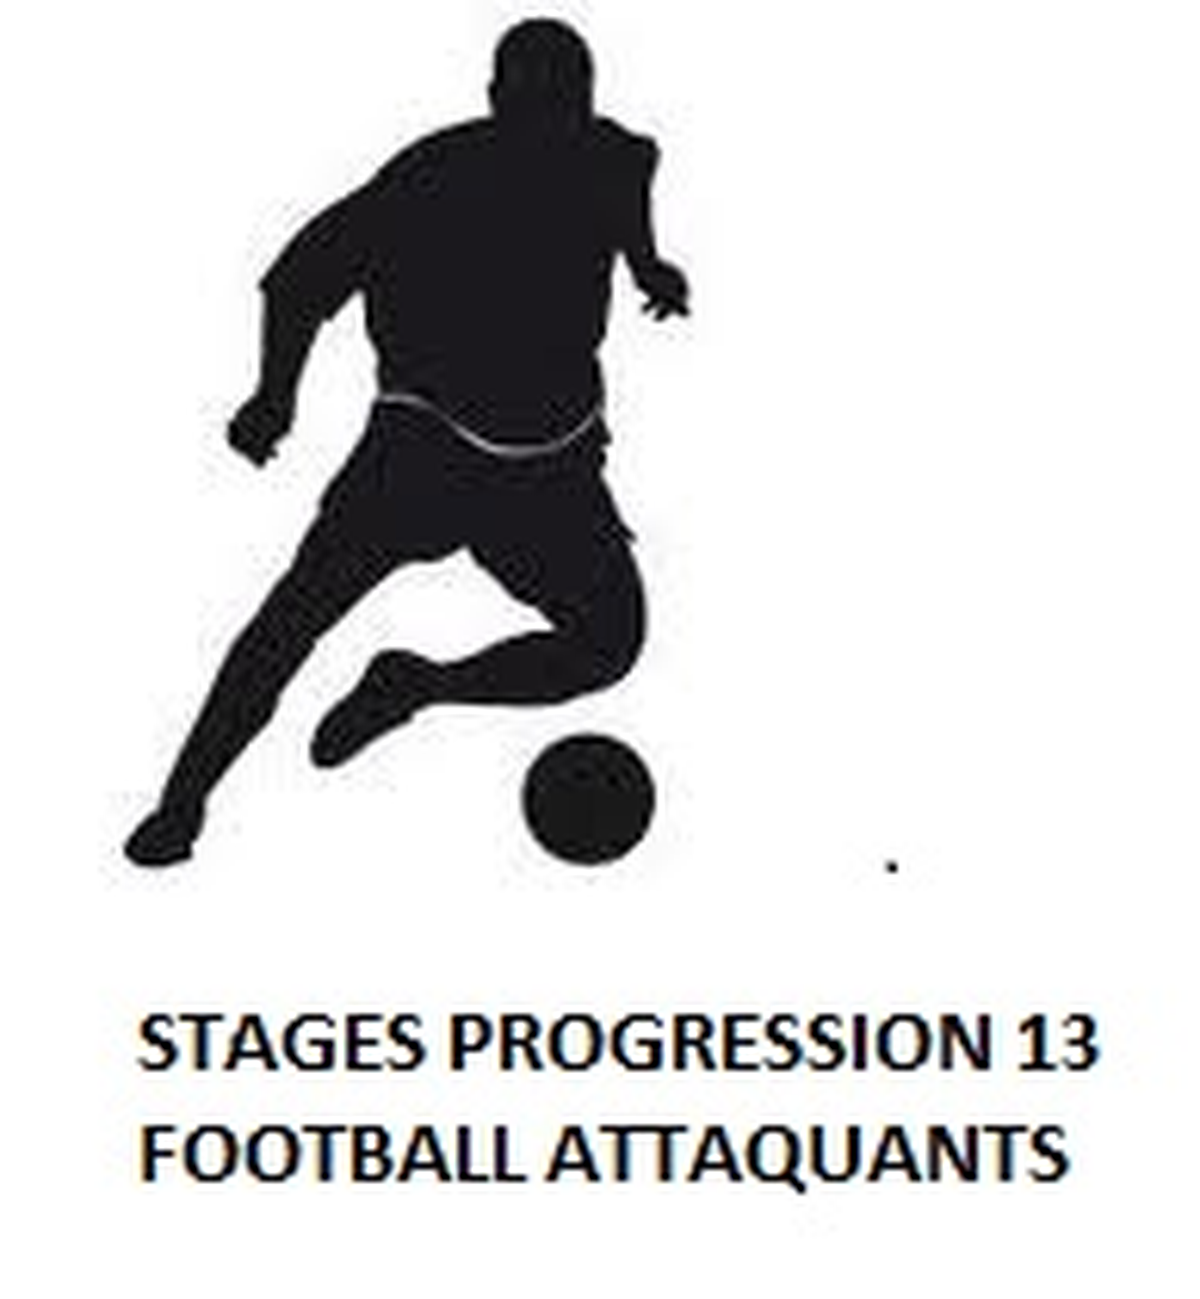 Selection U11 Progression 13